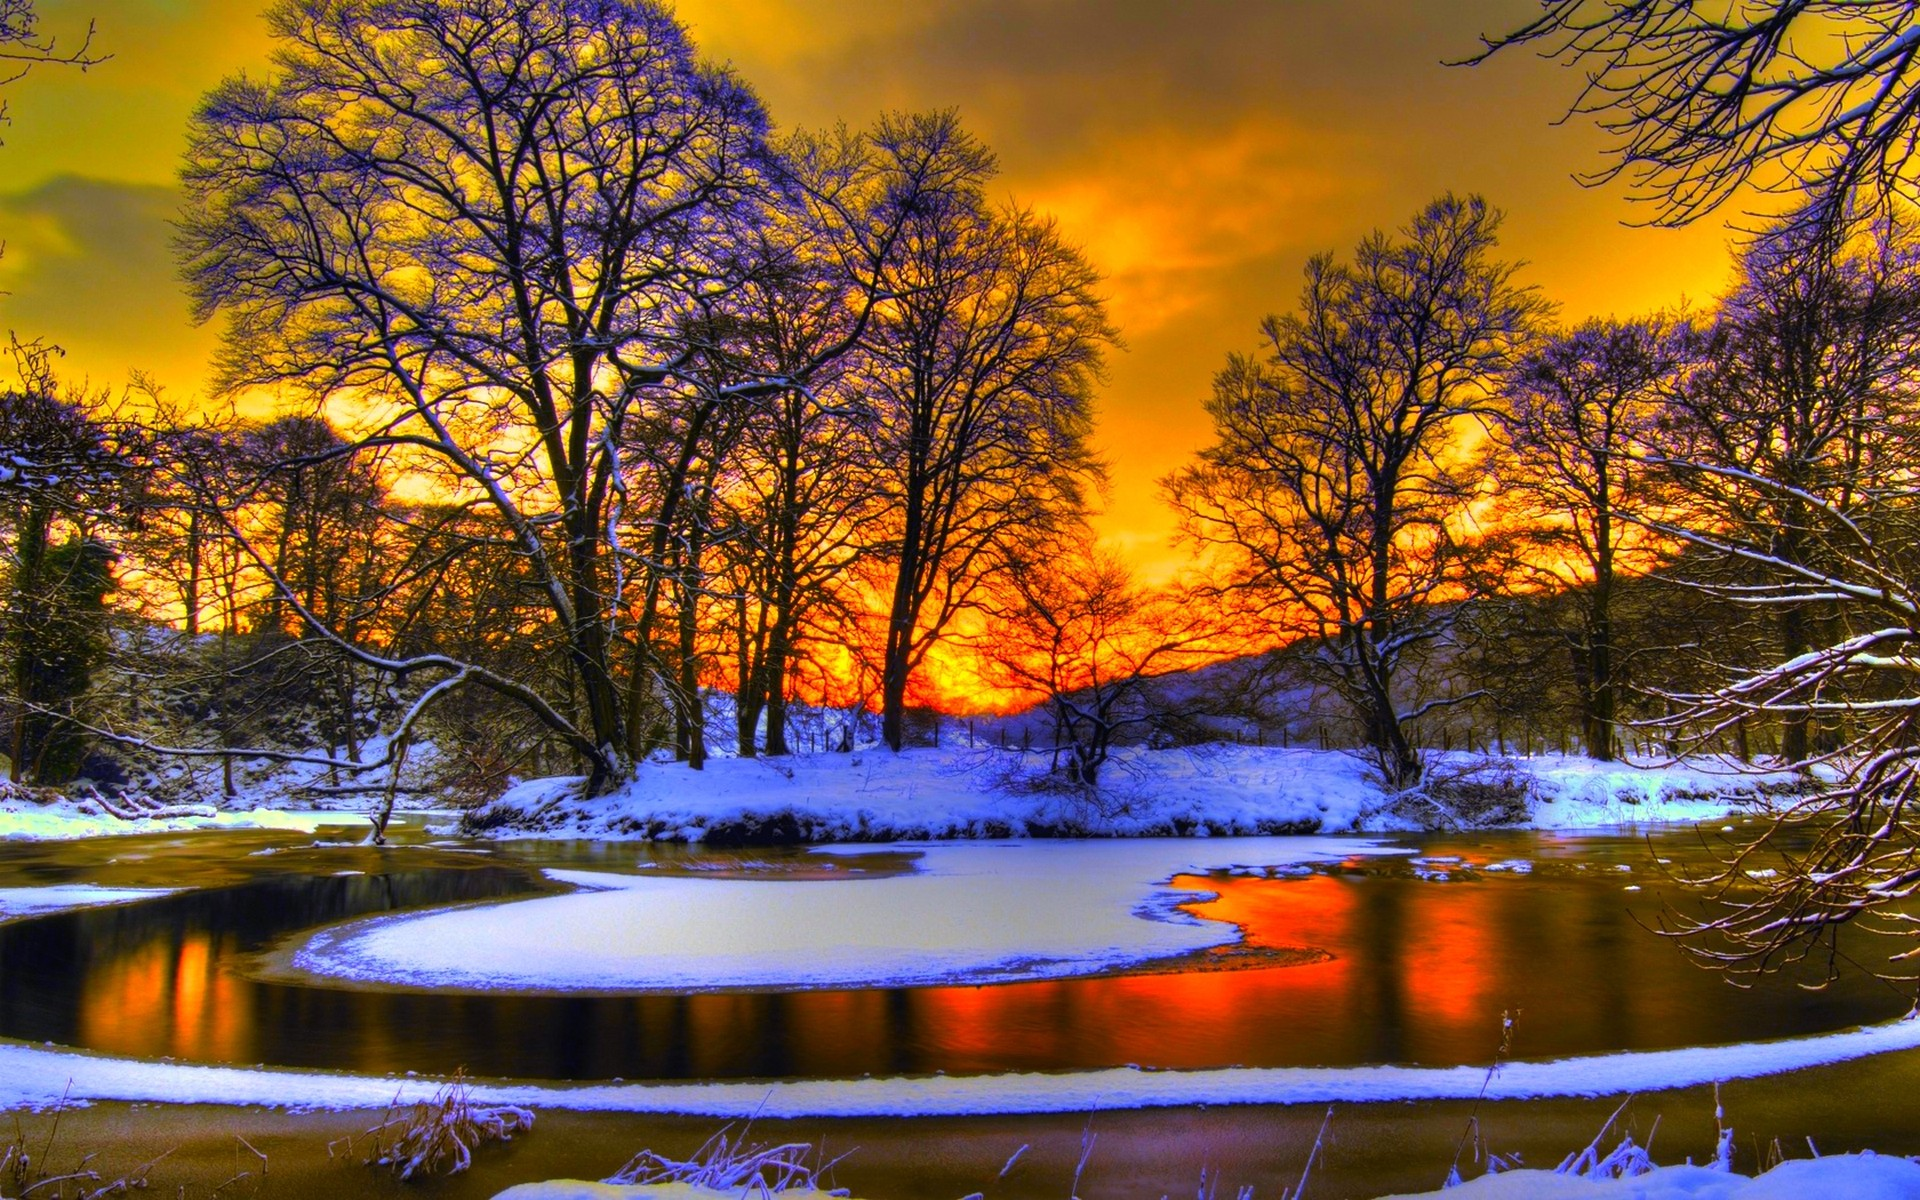 Wallpaper Background Gallery: Winter Pictures For Desktop Background (69+ Images